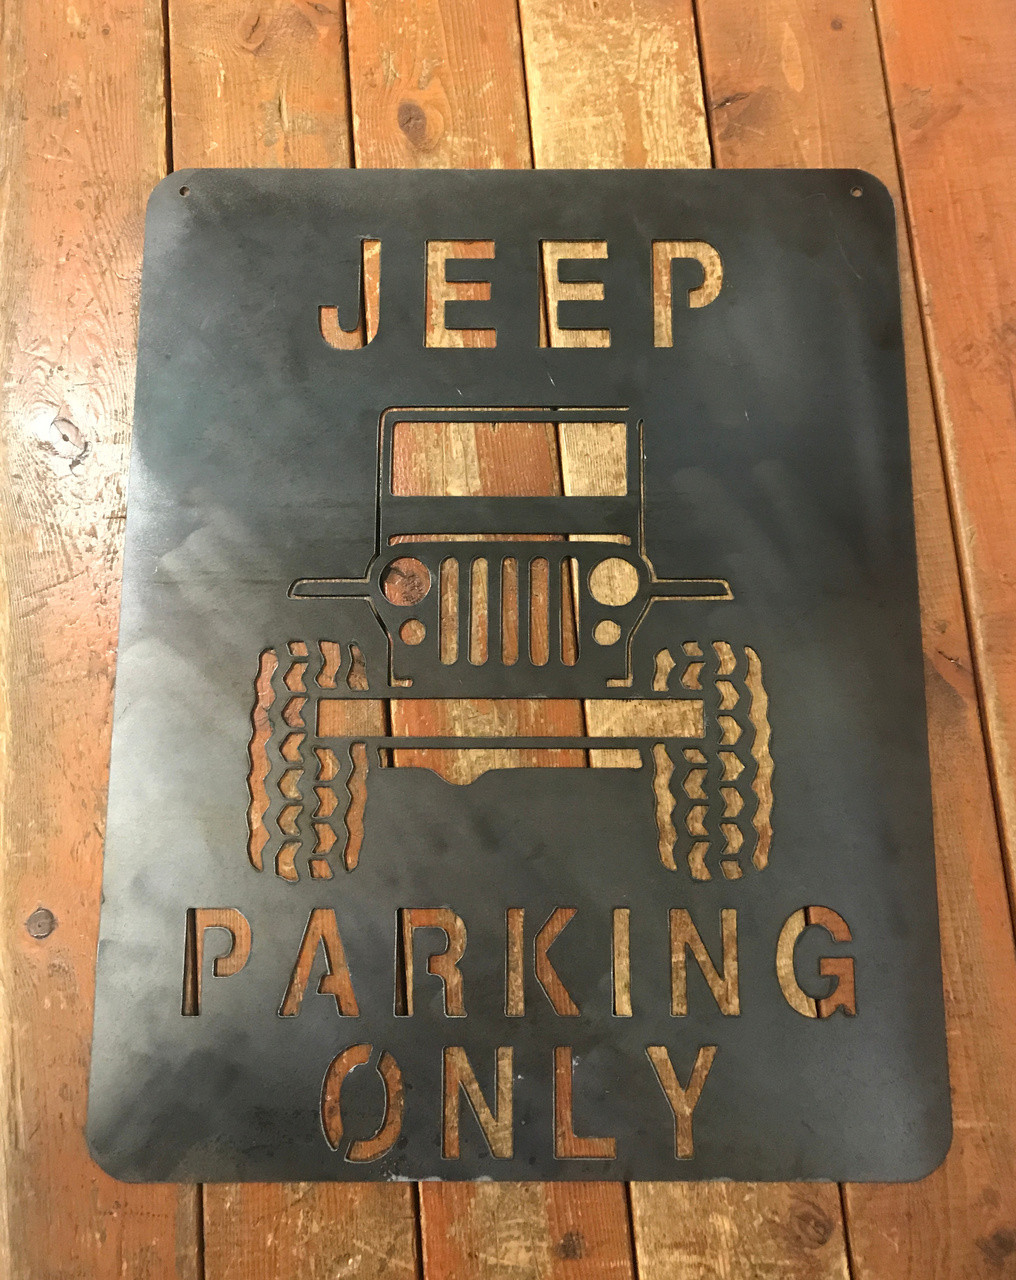 Gifts For Jeep Lovers >> Jeep Parking Metal Art Plasma Cut Sign - Army Surplus Warehouse, Inc.